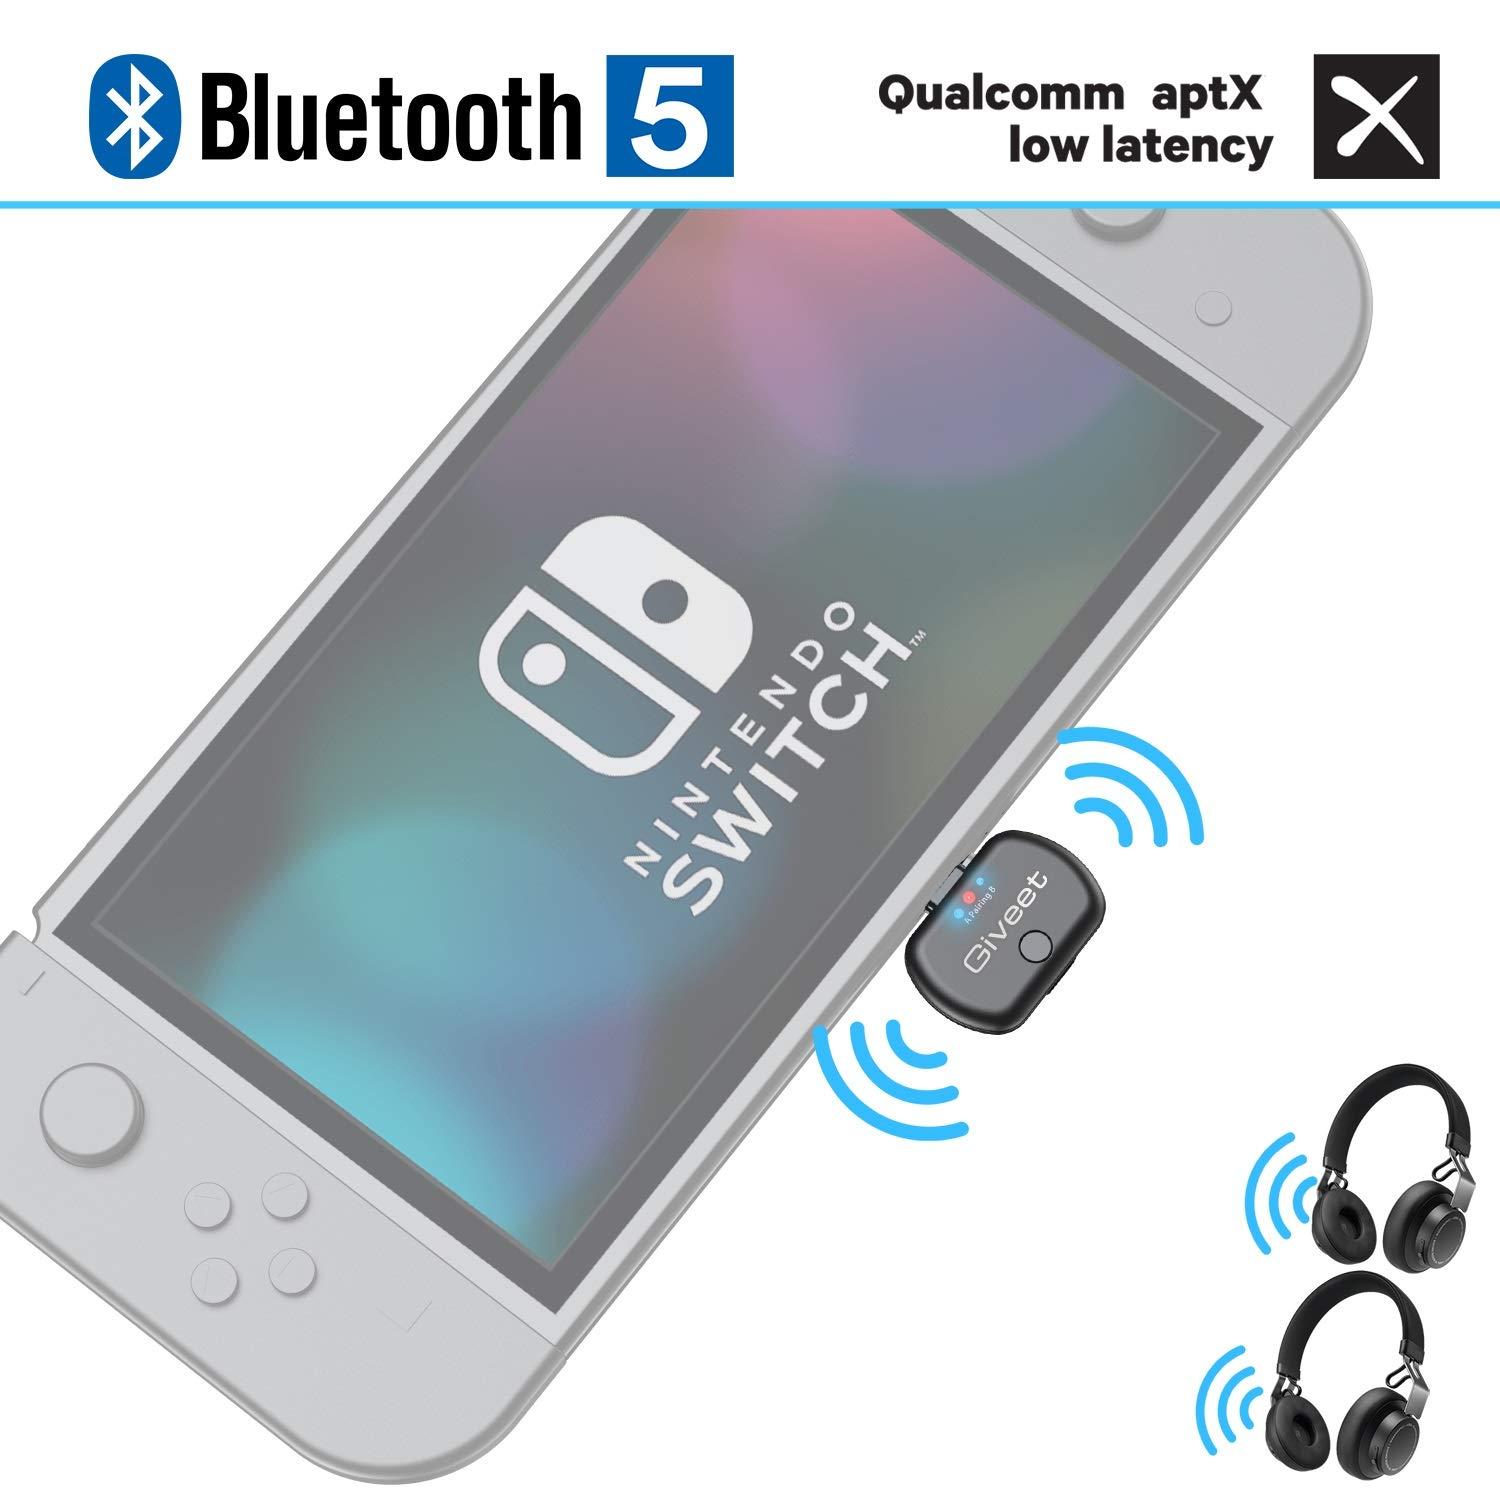 Giveet USB-C Bluetooth Audio Transmitter Adapter Support in-Game Voice Chat, Dual Link aptX Low Latency Compatible with Nintendo Switch, Wireless Gaming Headphones and PC by Giveet